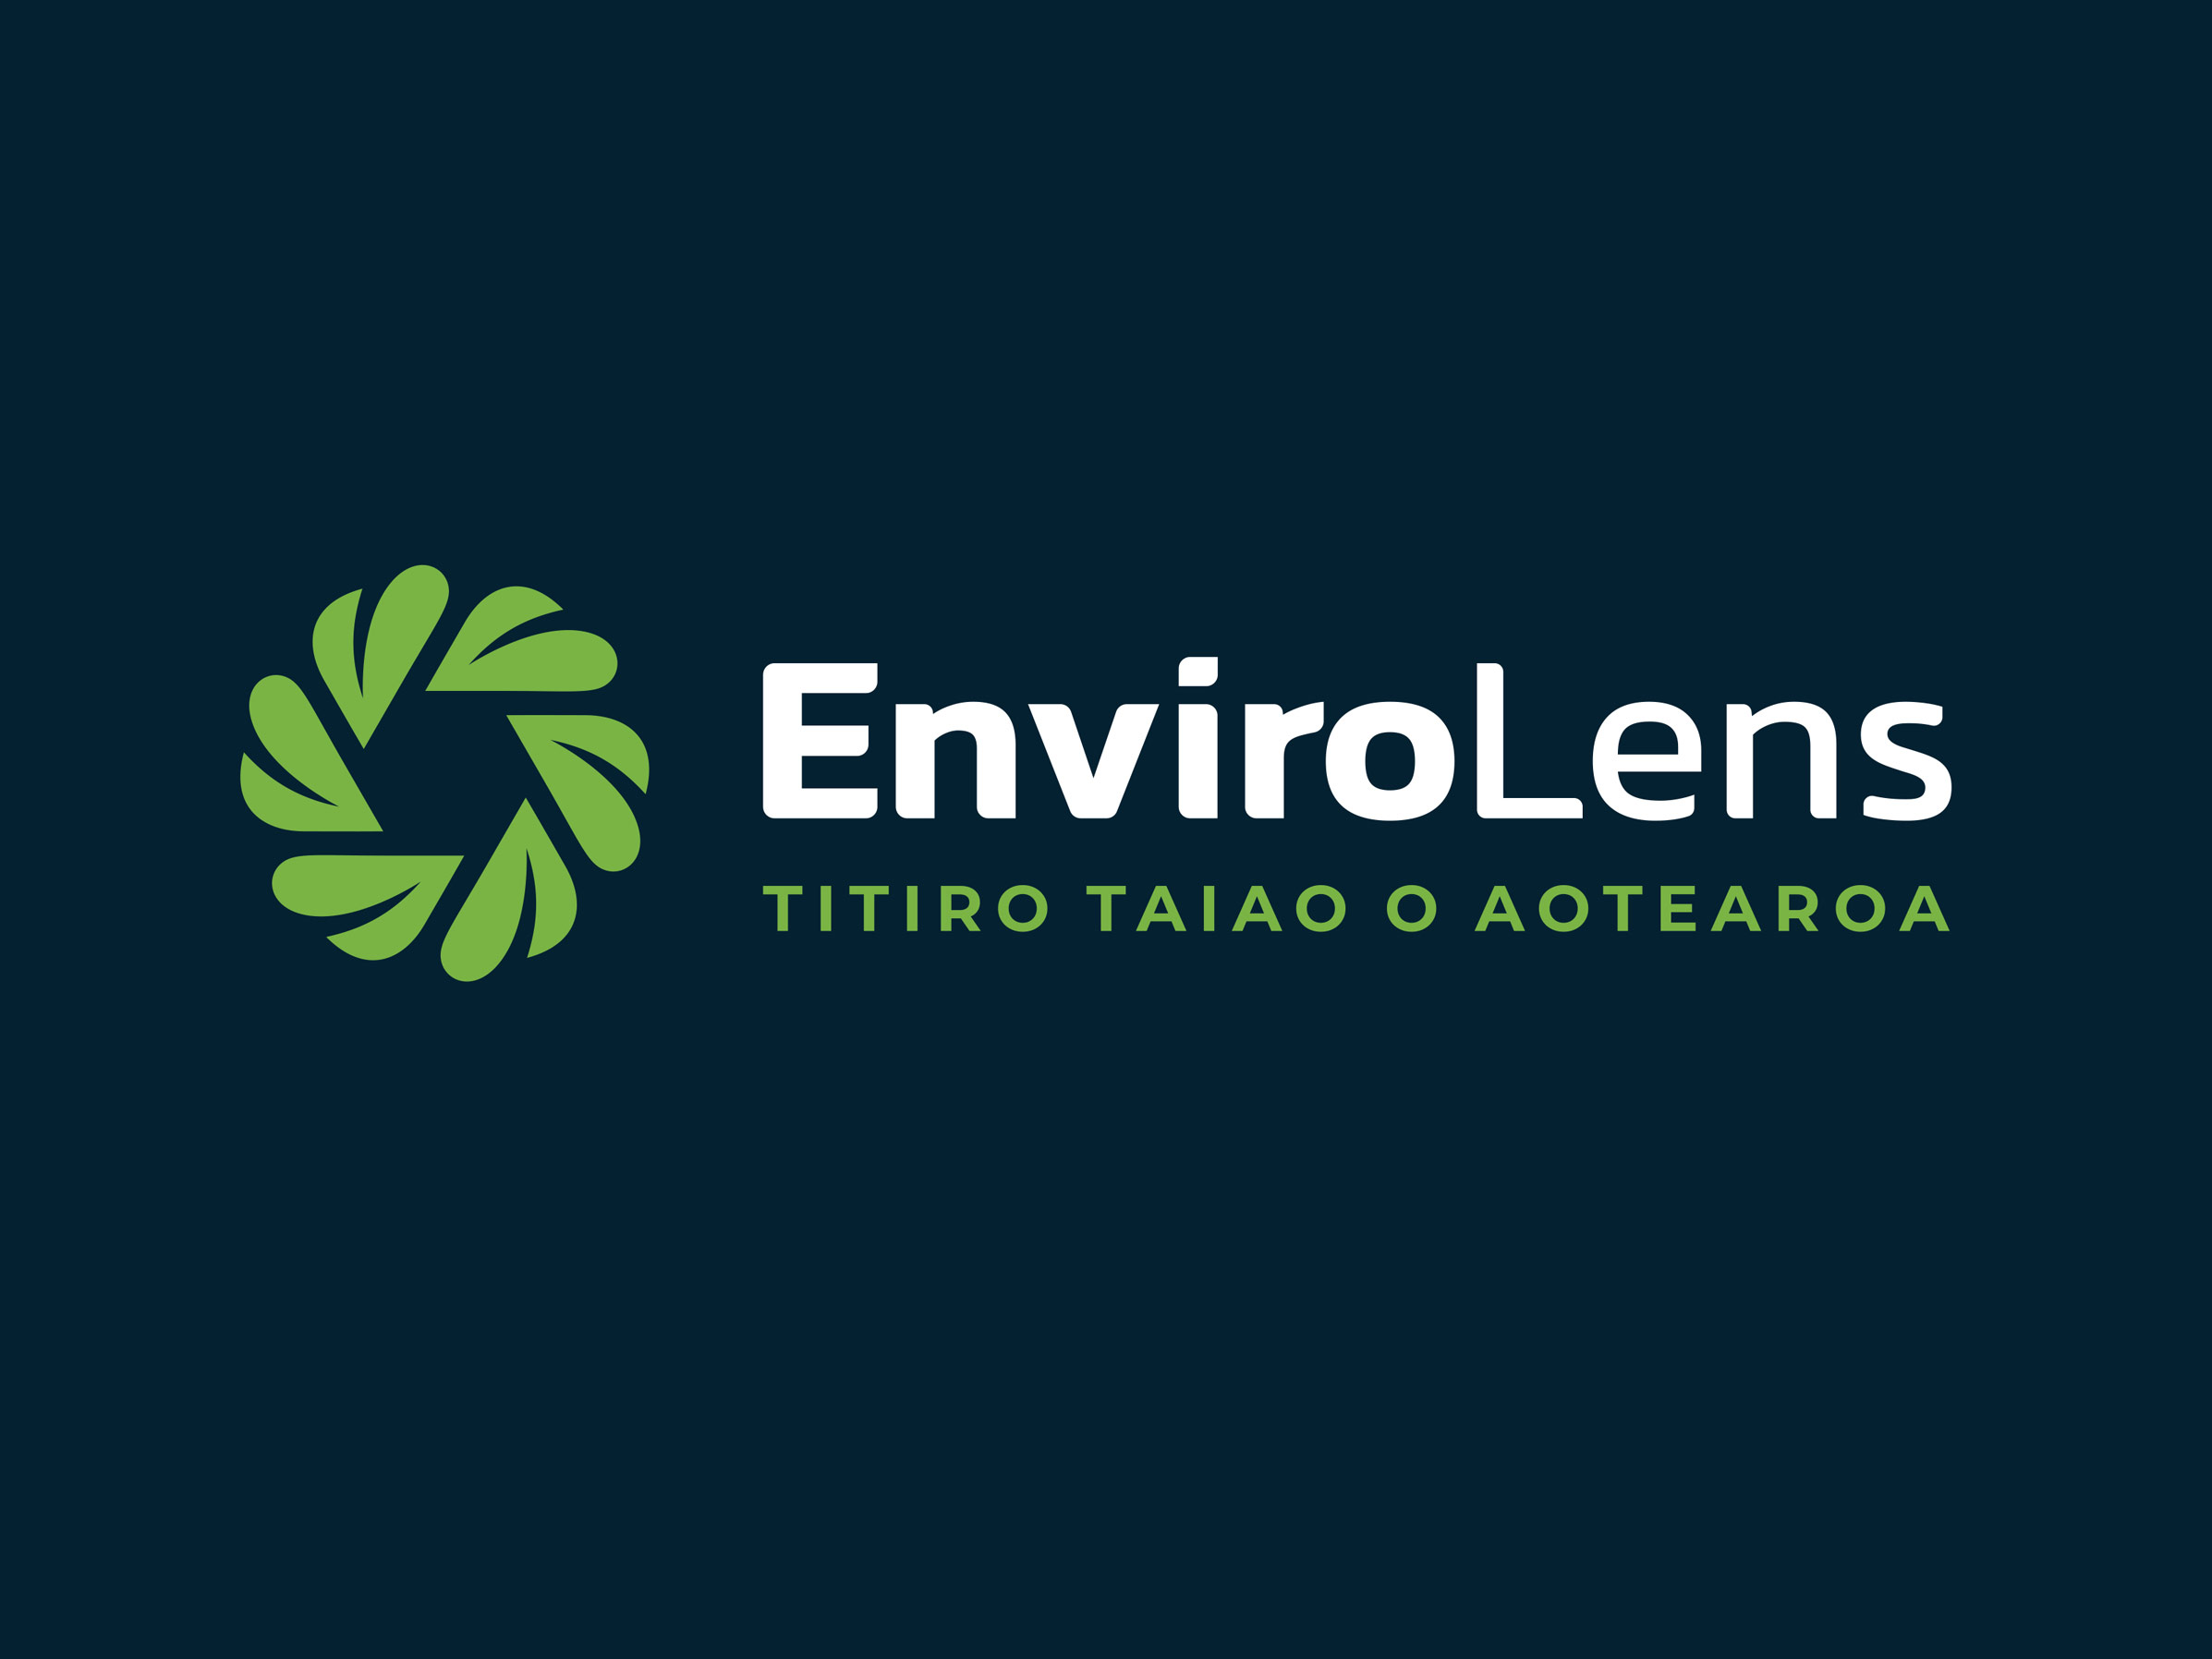 Leaf and lens logo design in green and navy blue